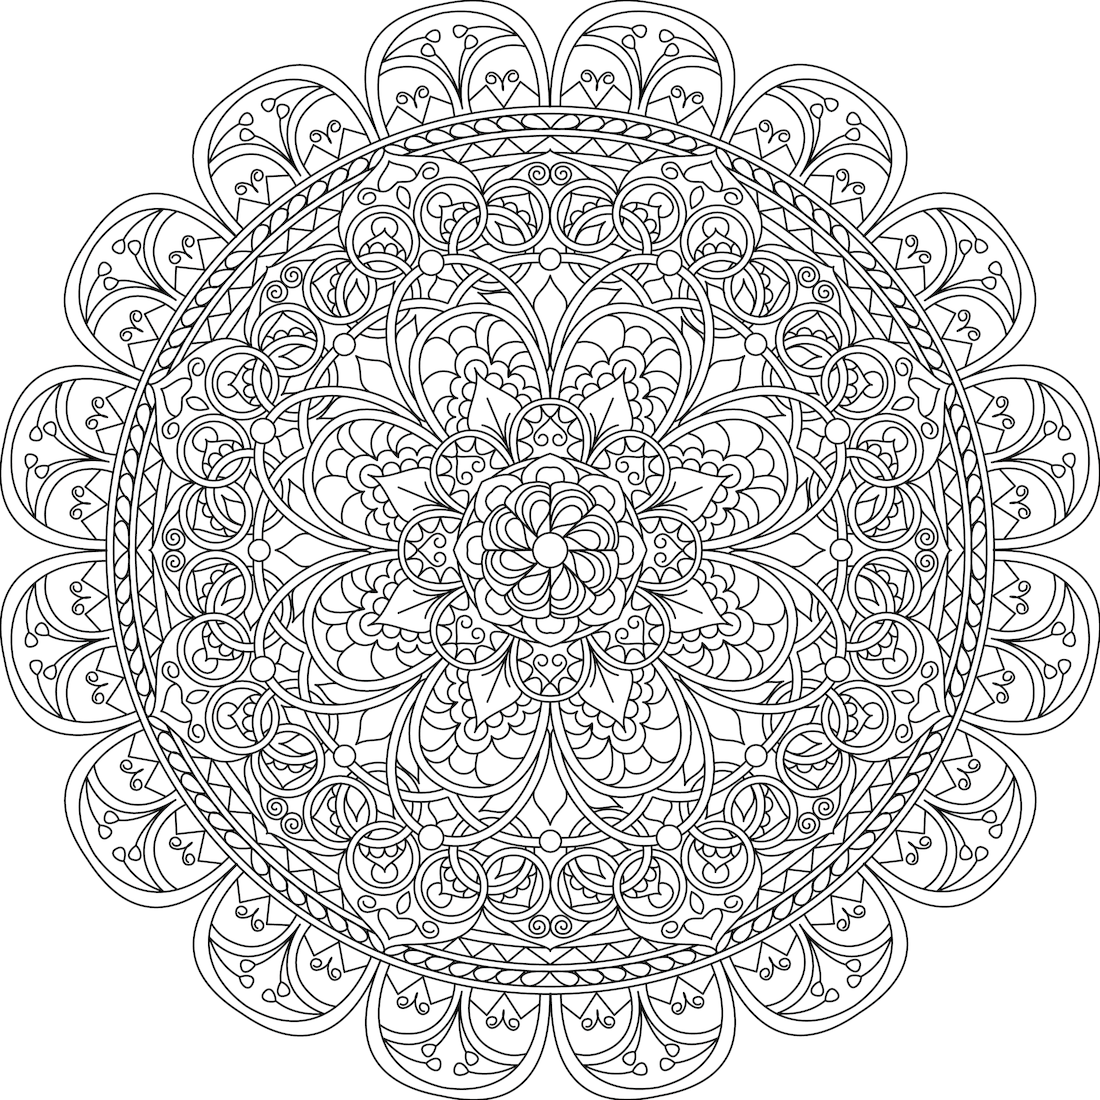 images of mindful coloring pages - photo#13